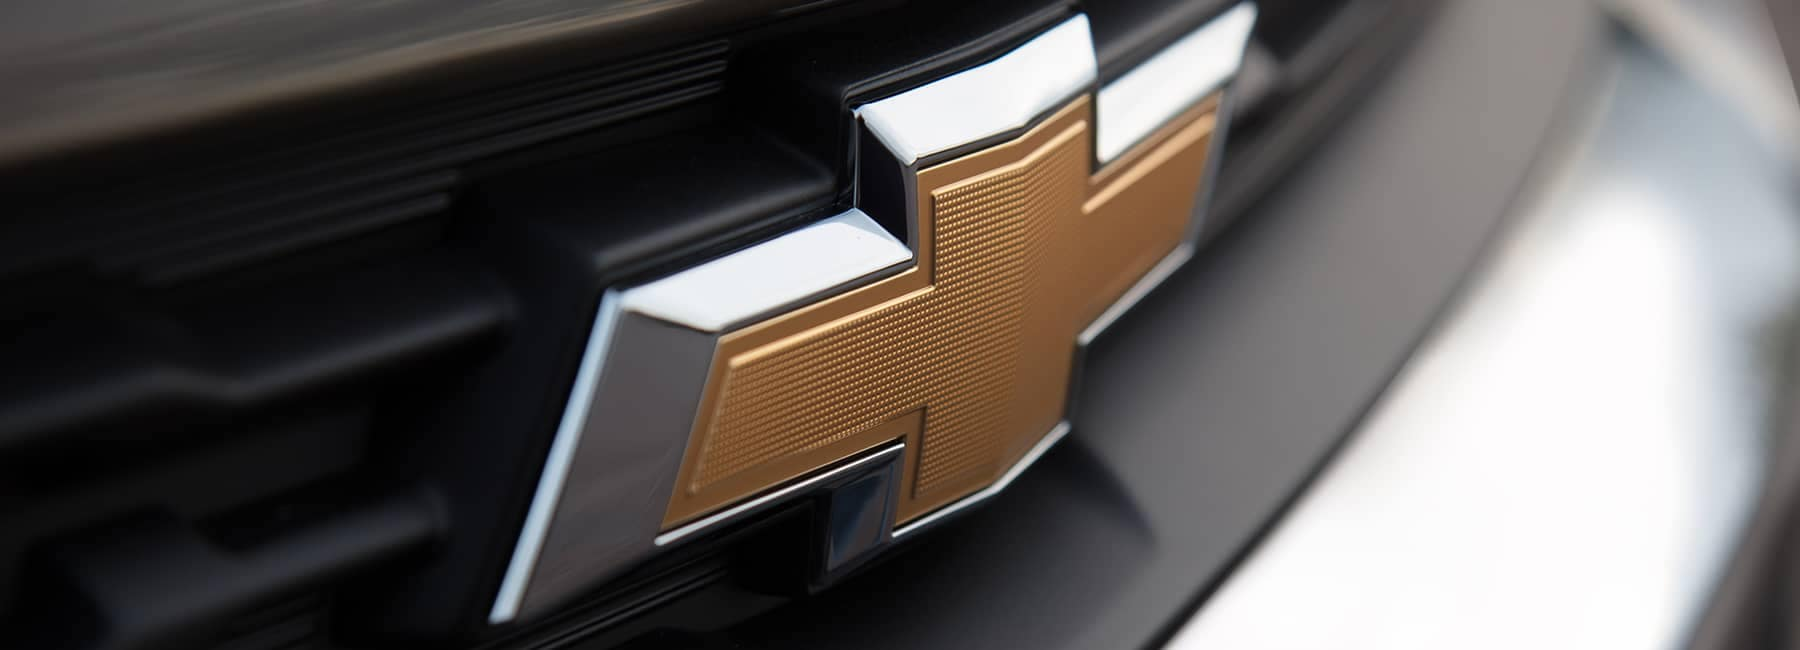 chevy car grille